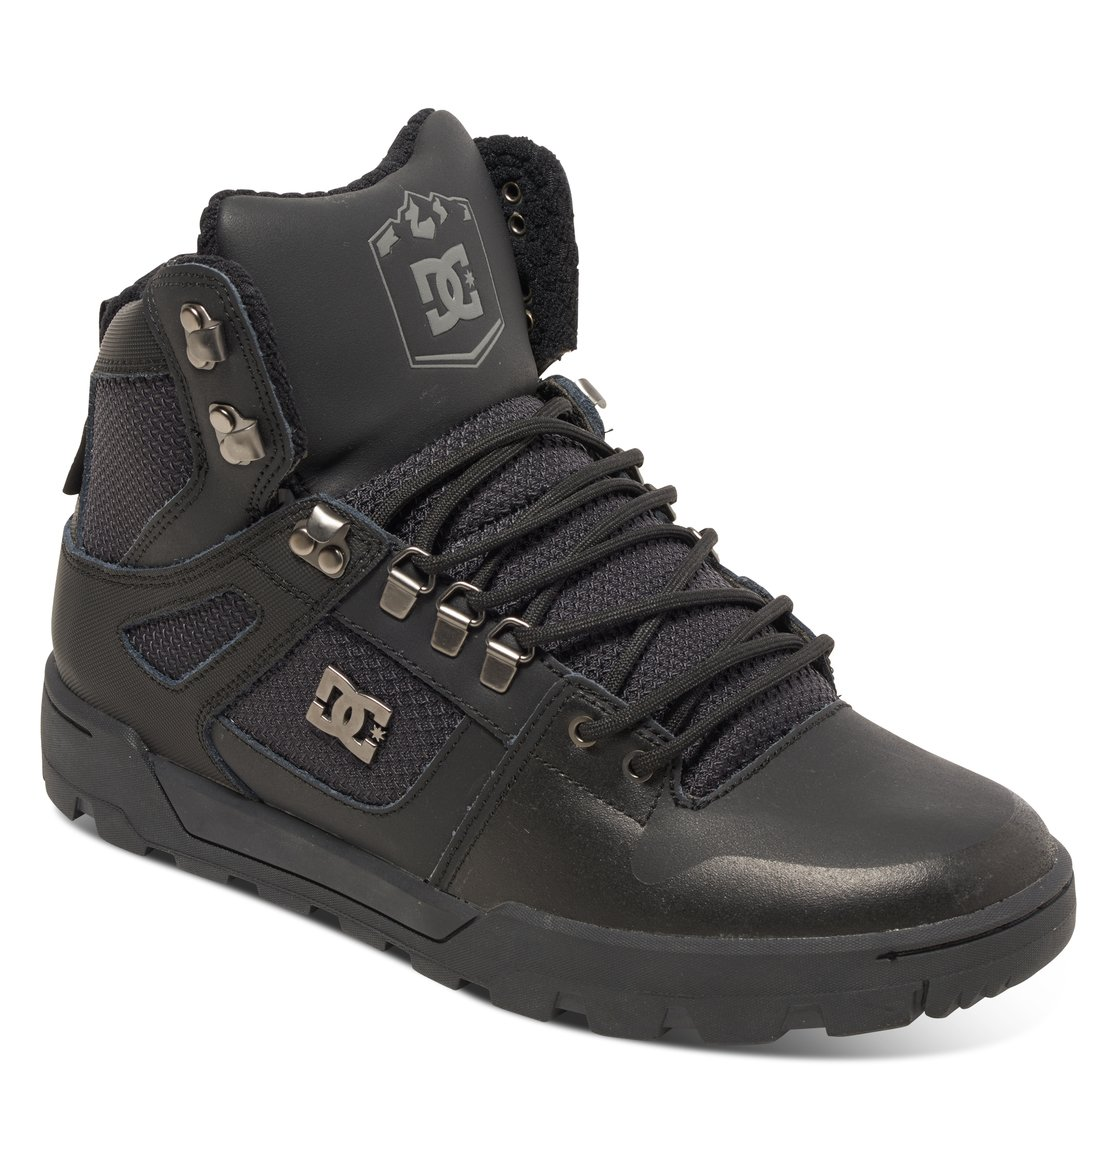 s spartan high boot mountain boots adyb100001 dc shoes